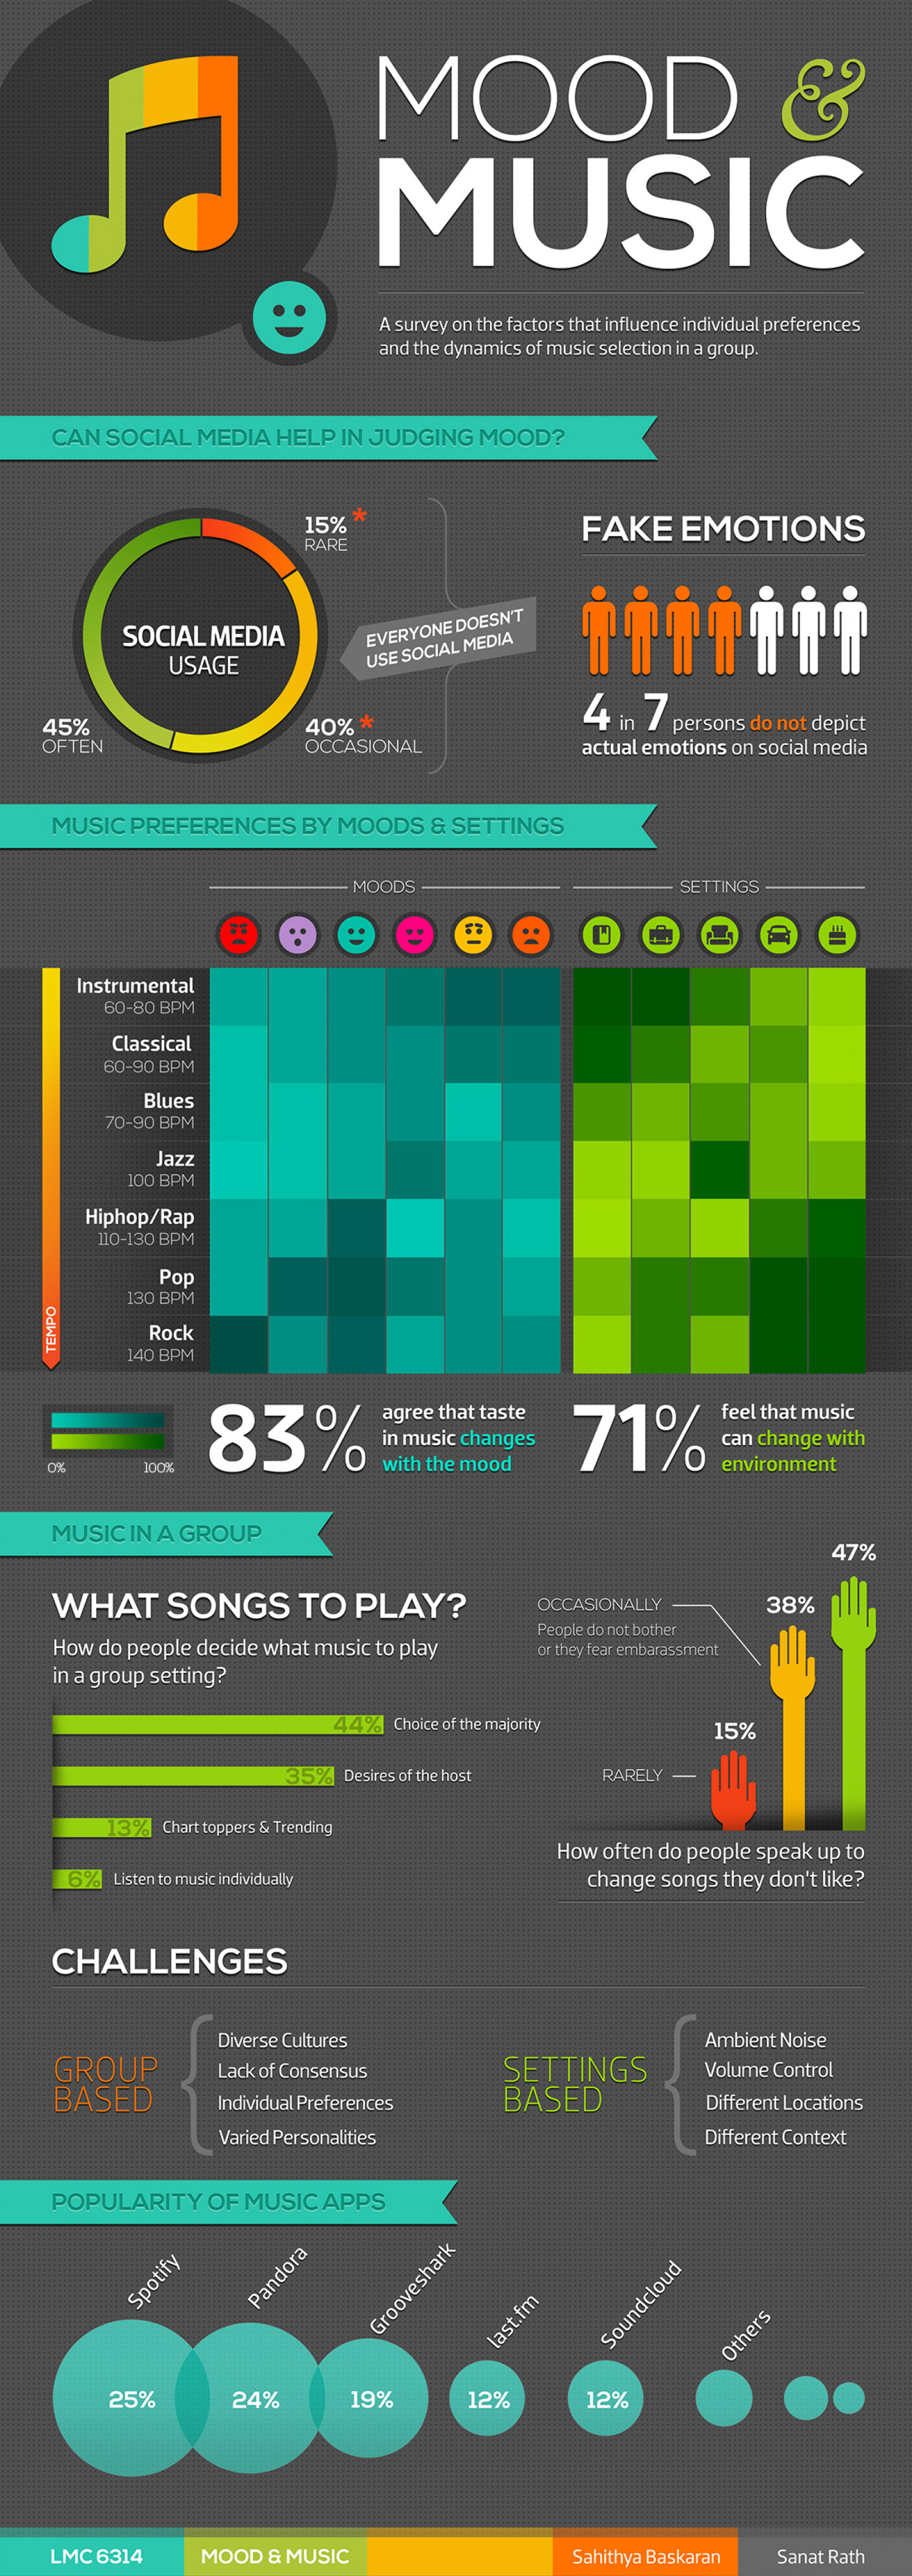 Mood & Music Infographic